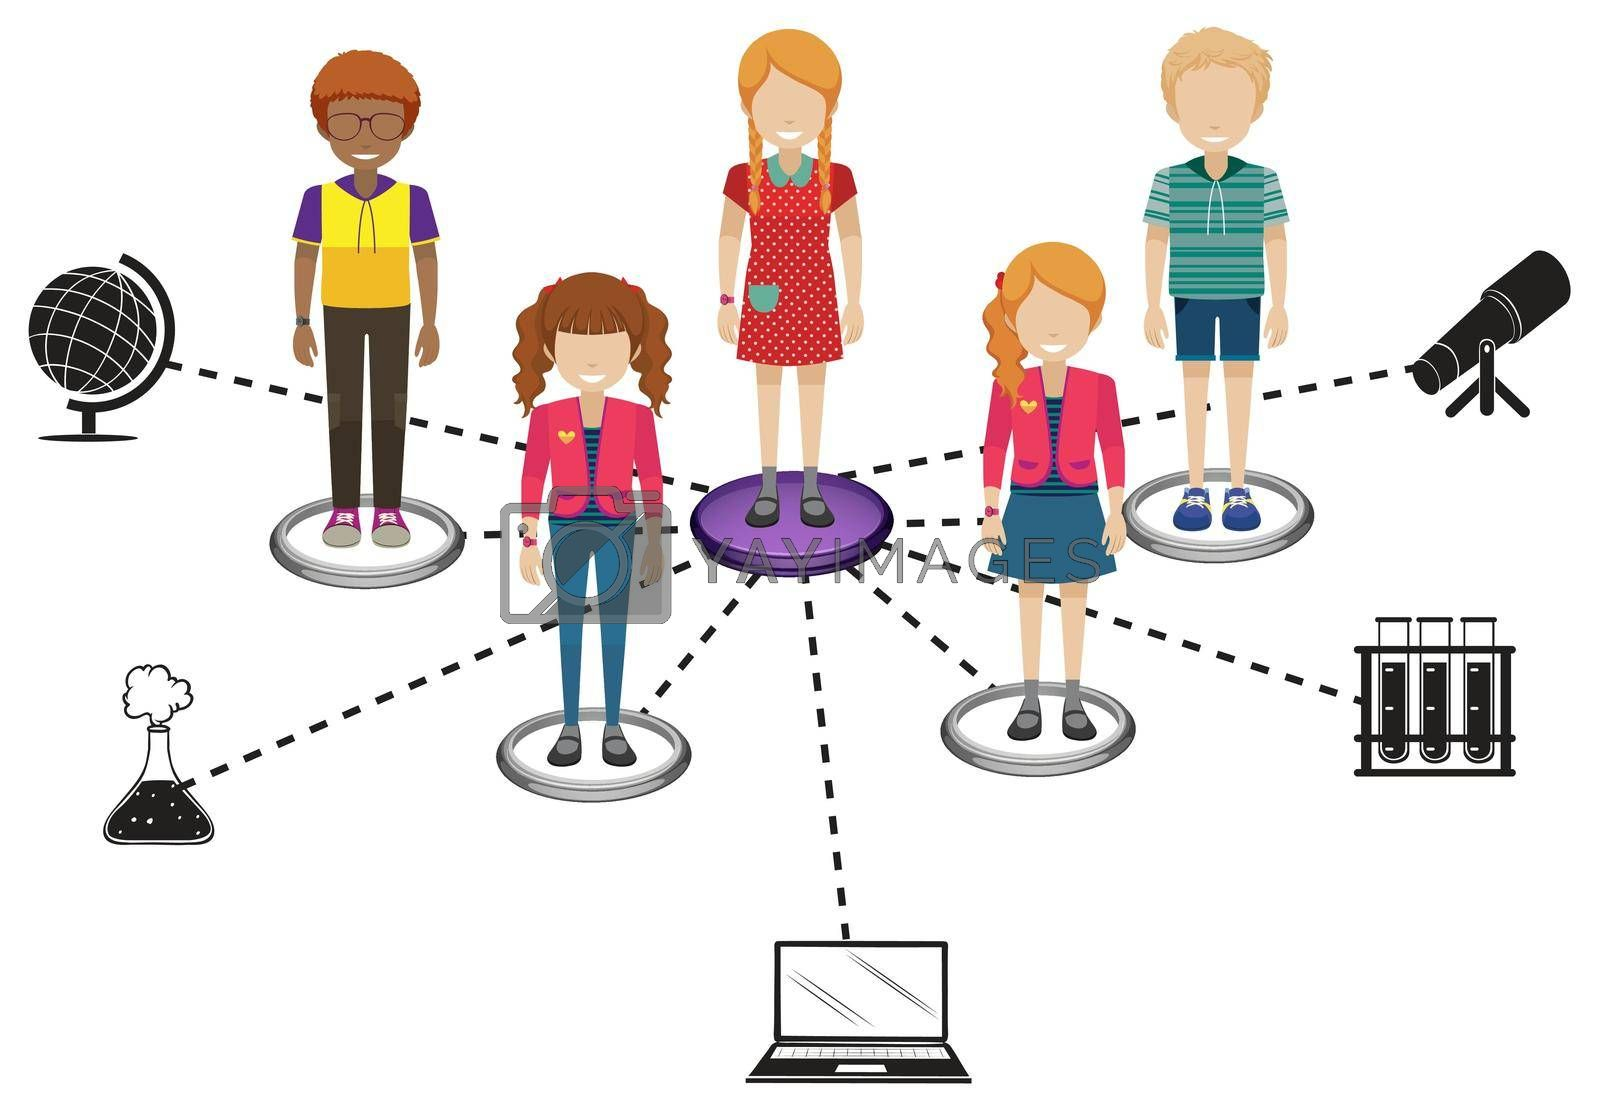 Royalty free image of Connections of people by iimages